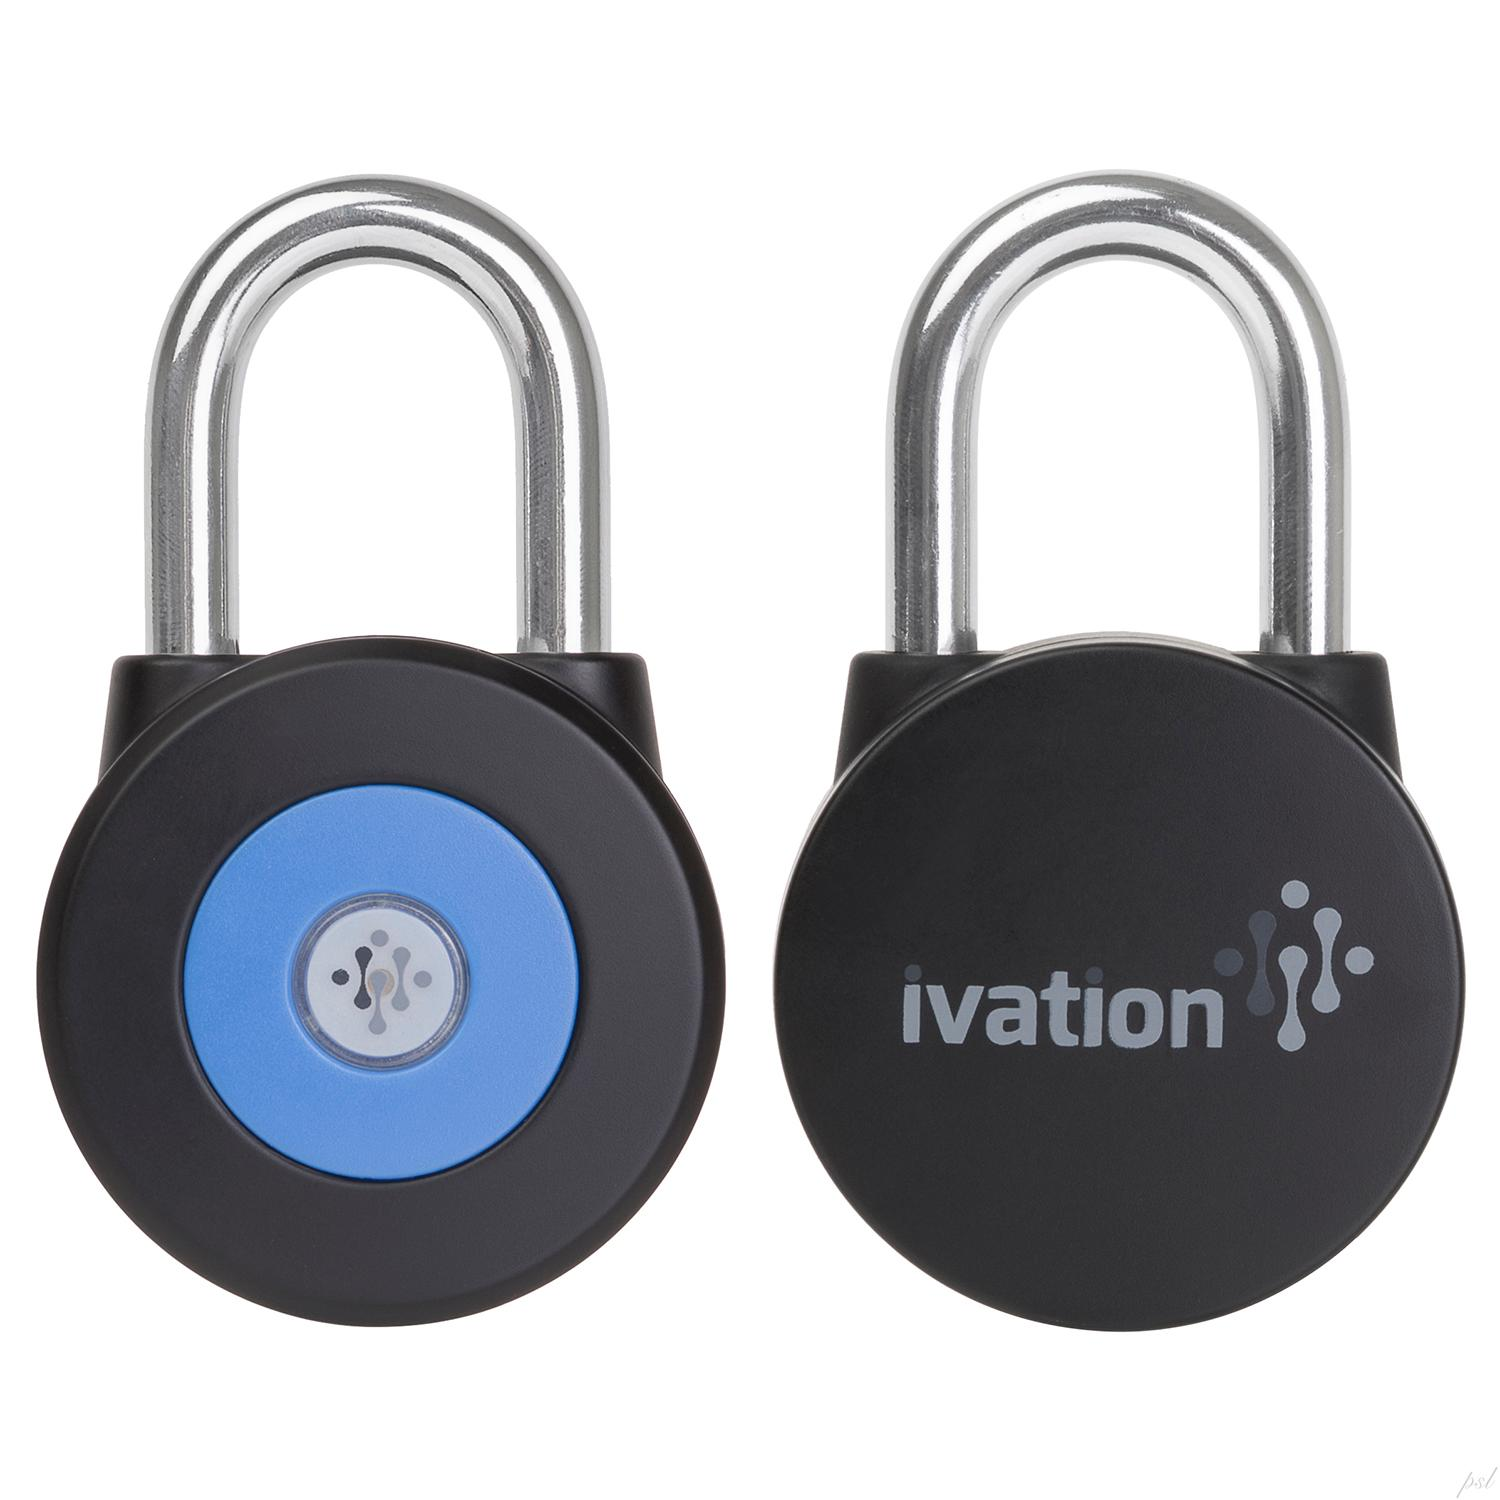 choose from two ways to unlock your padlock manually within the app